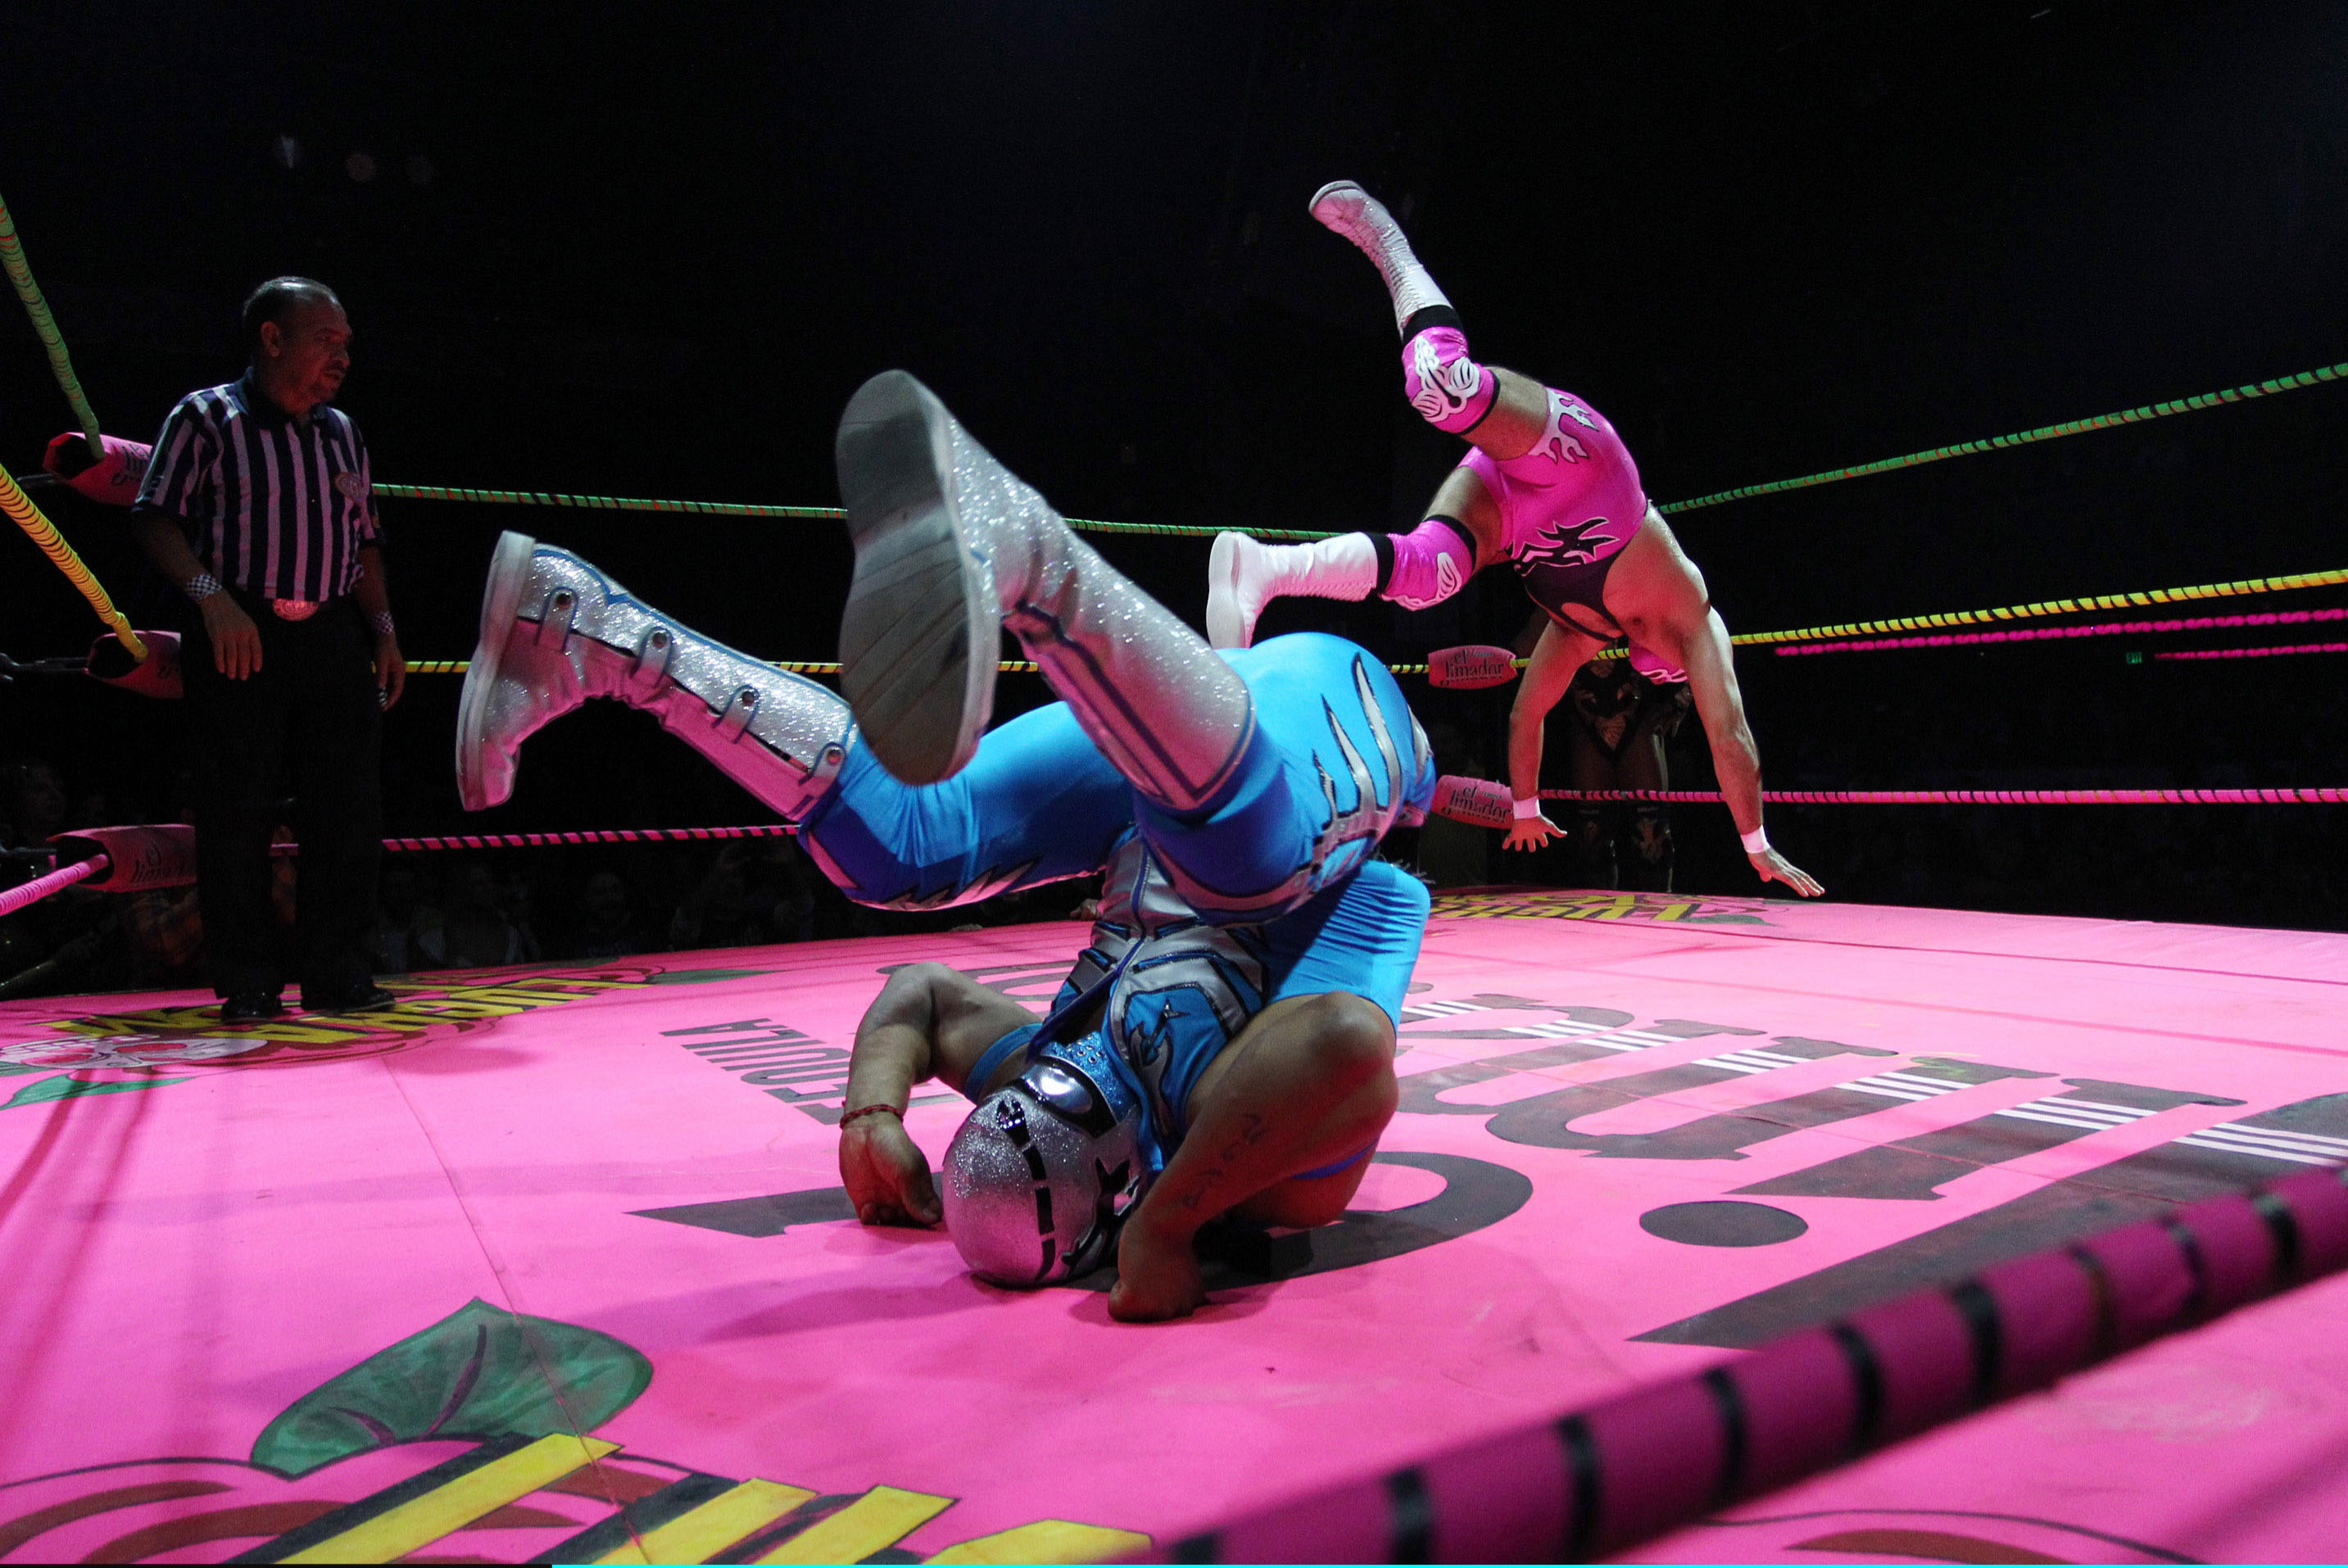 Gallery: Mexican Masked Wrestling Event Takes On Halloween Theme